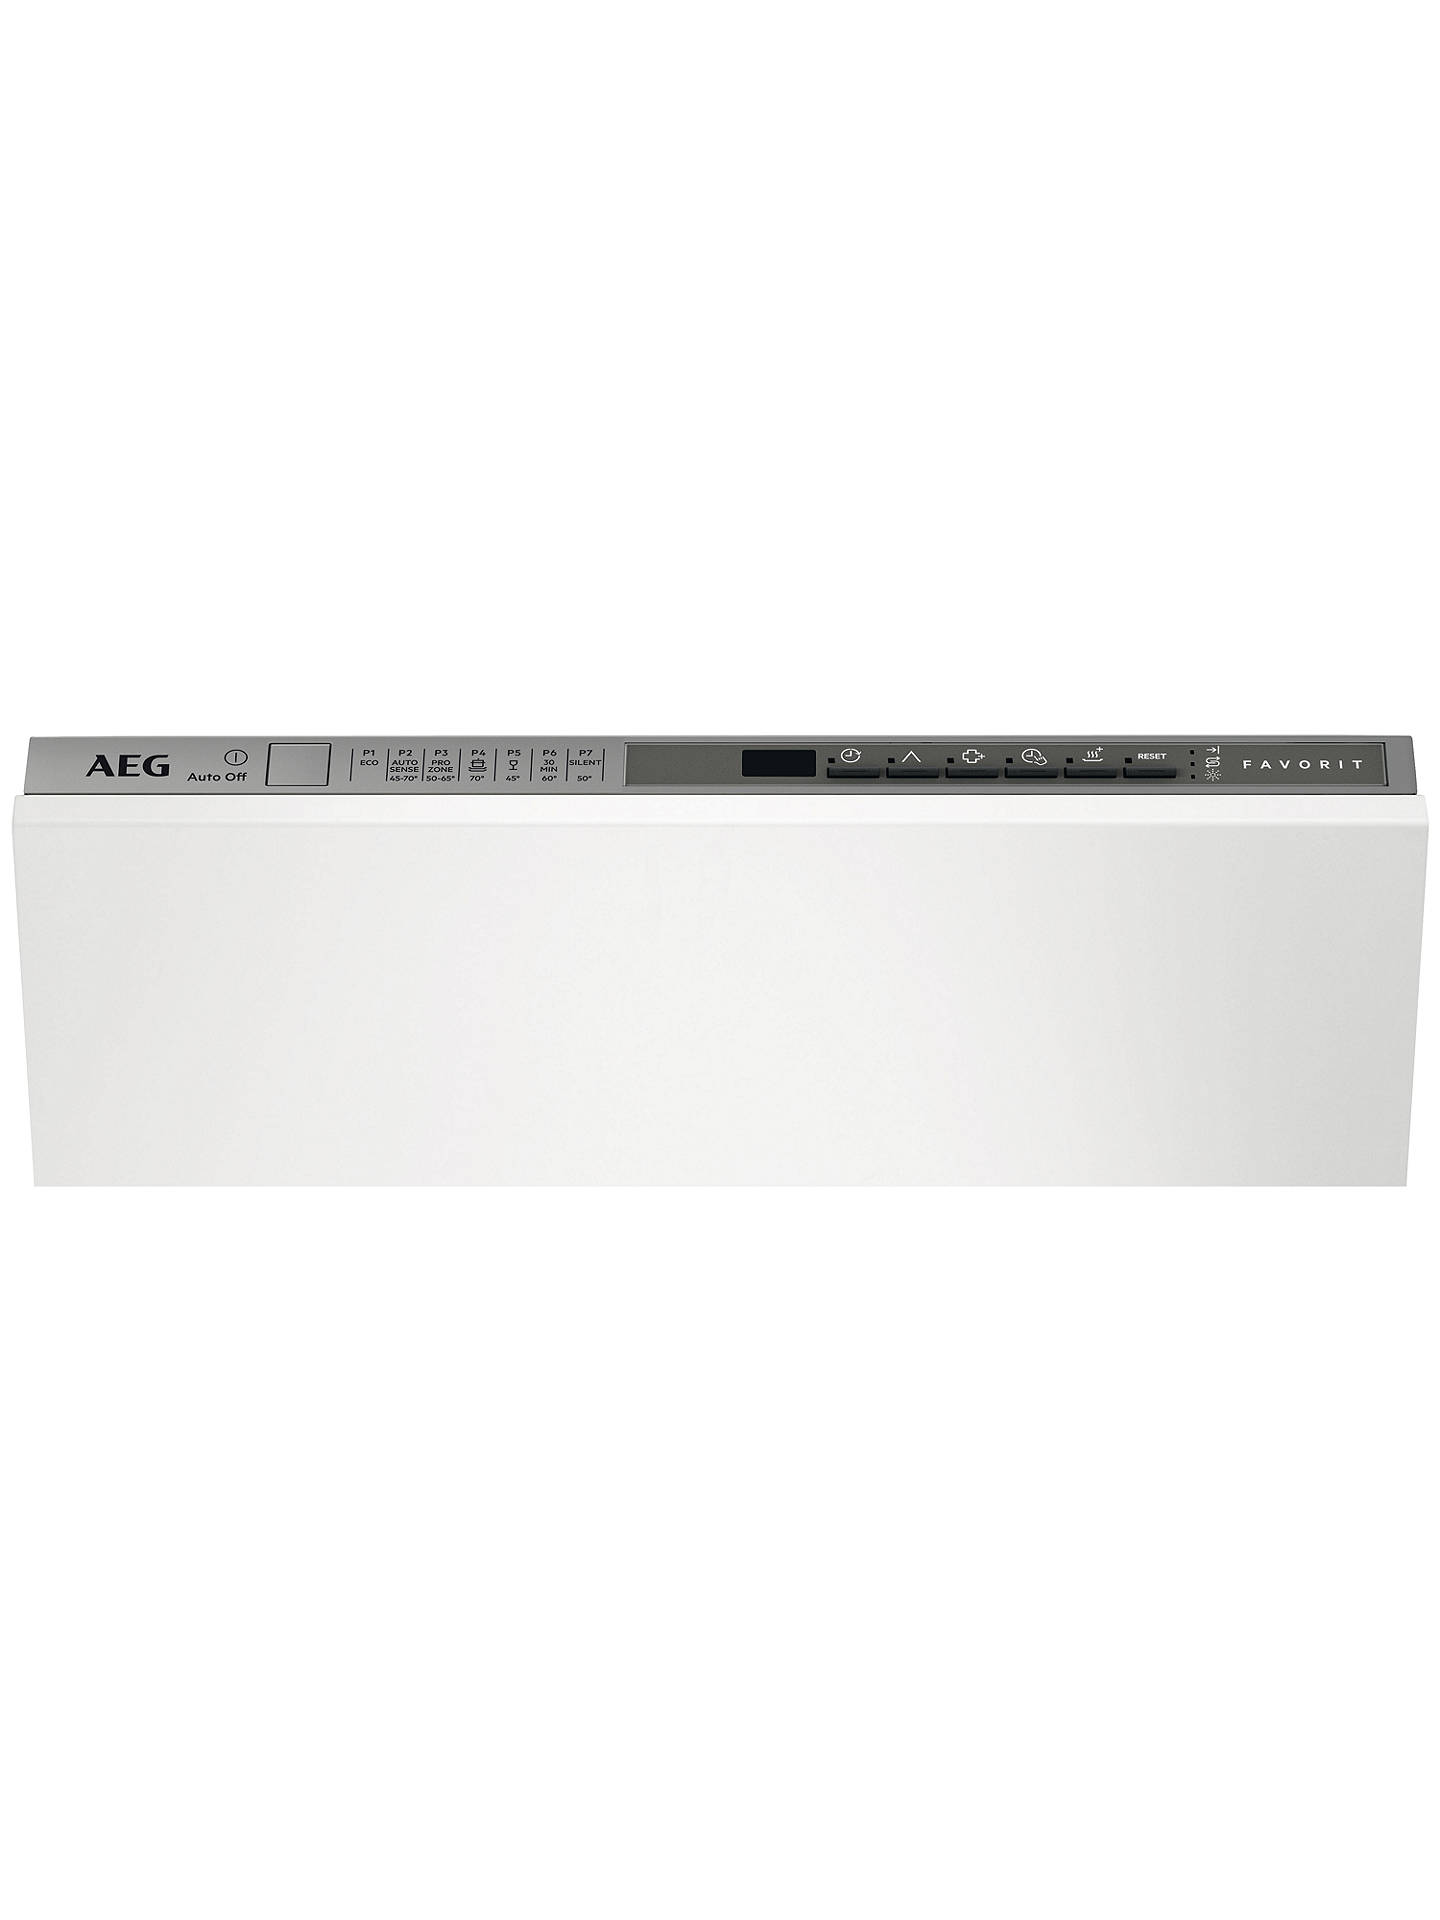 BuyAEG FSS63400P Integrated Dishwasher, Stainless Steel Online at johnlewis.com